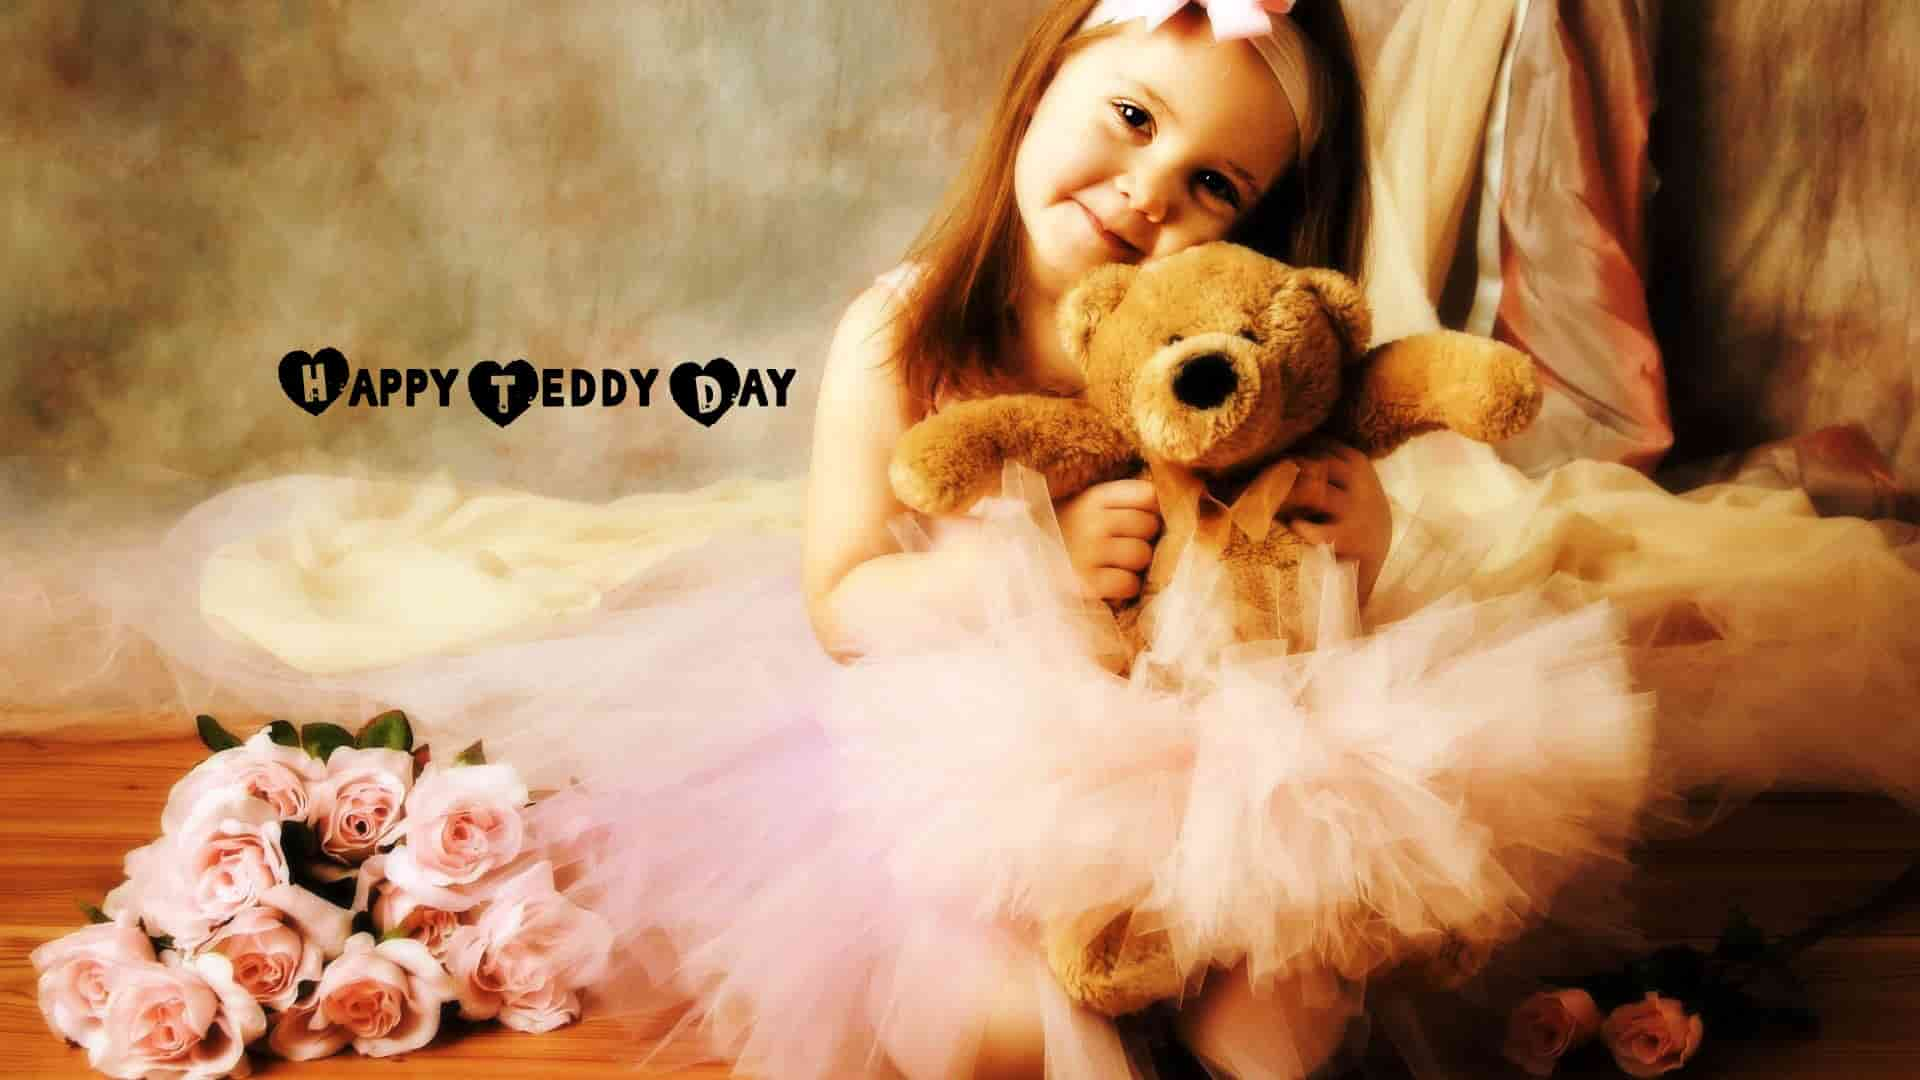 Cute Teddy Day Images with Love